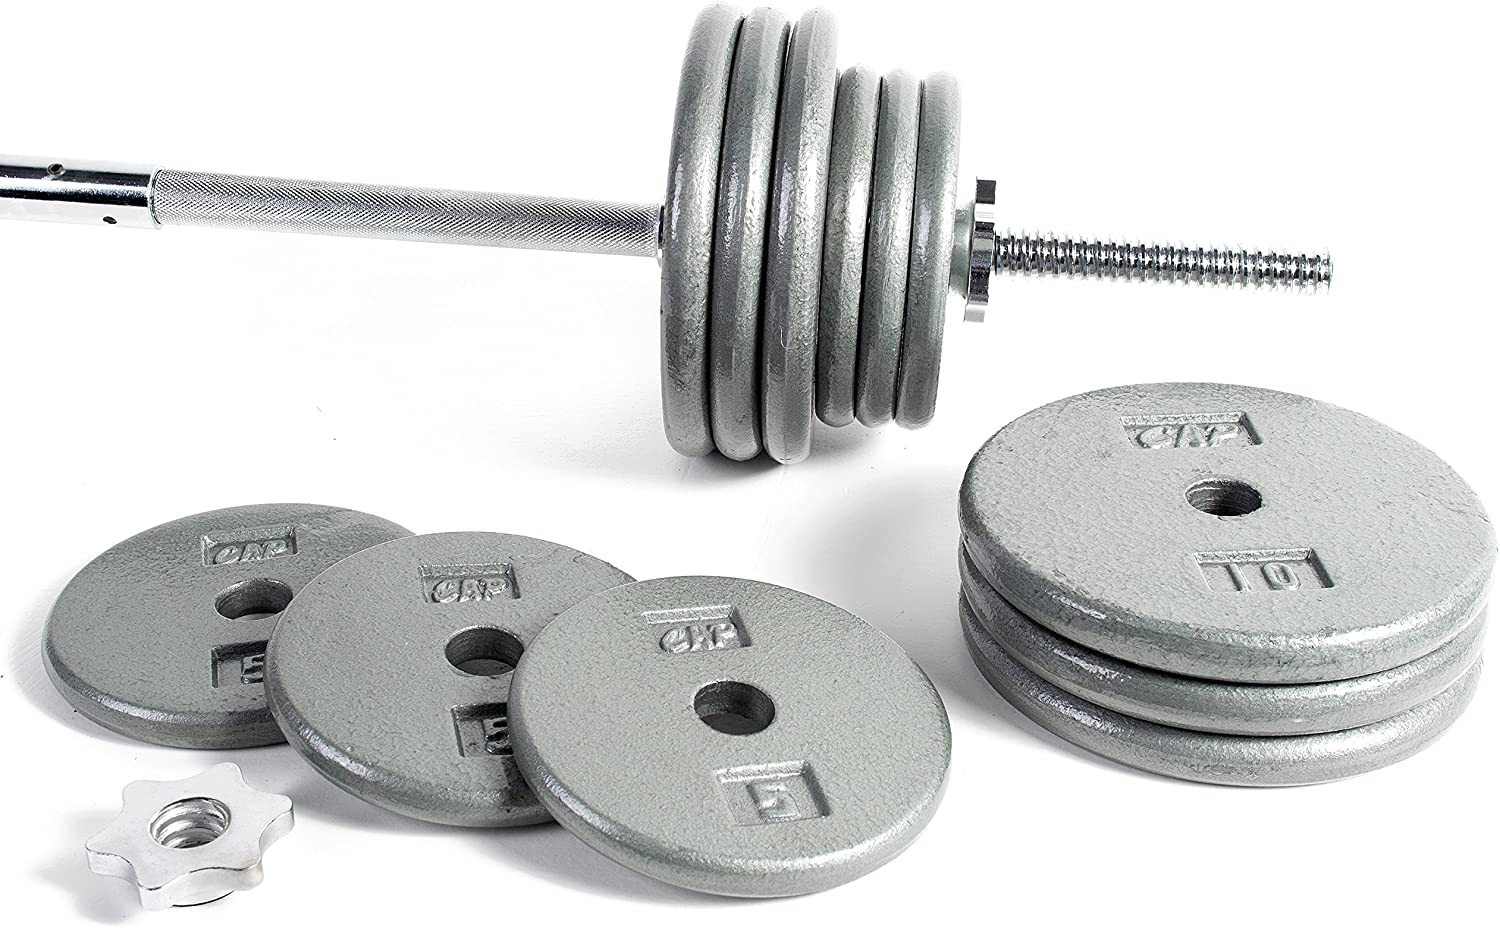 Amazon.com : CAP Barbell Standard 1-Inch Barbell Weight Set, 100-Pounds : Sports & Outdoors